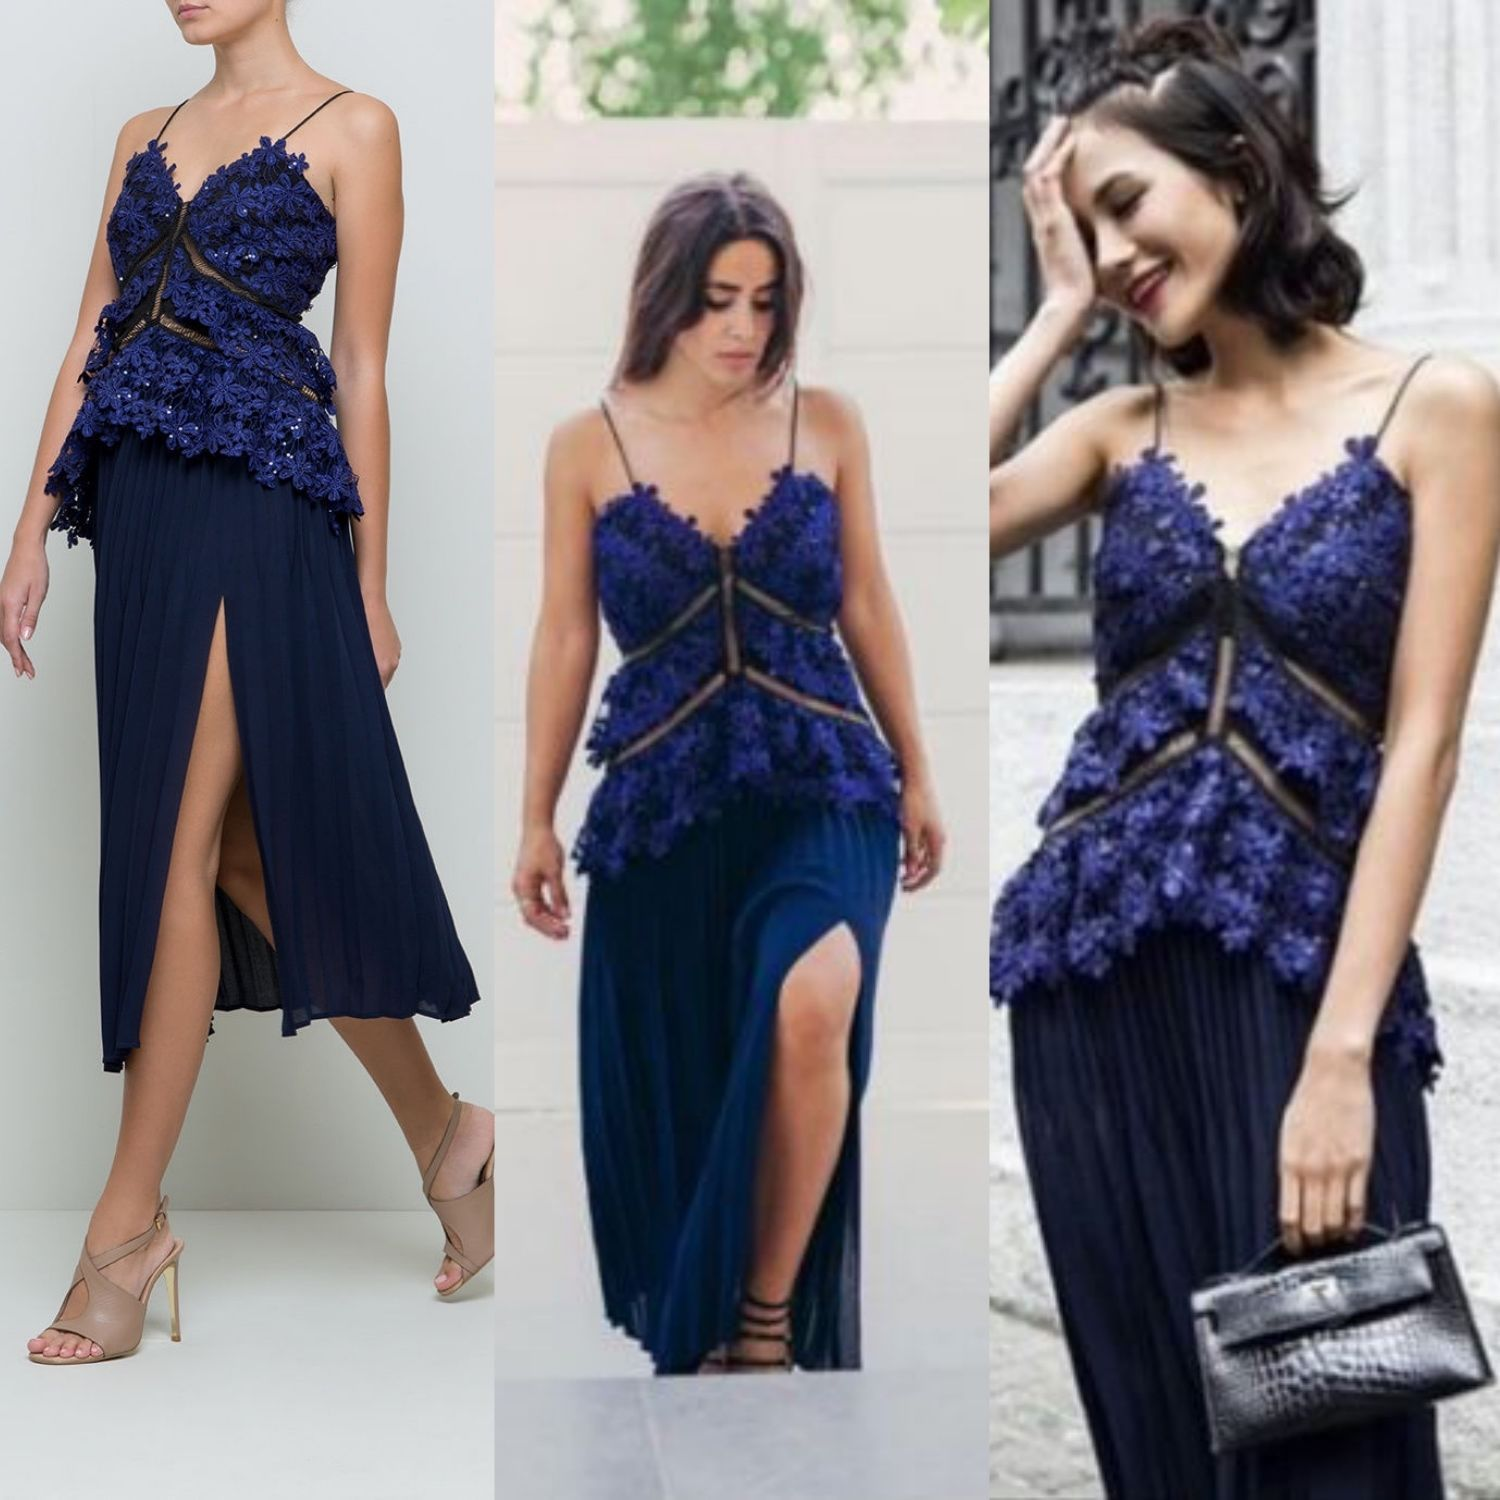 07532d27a5f7 Self Portrait Lace Double Peplum Midi Dress Pleated Navy Black UK Size 14  US 10 | eBay